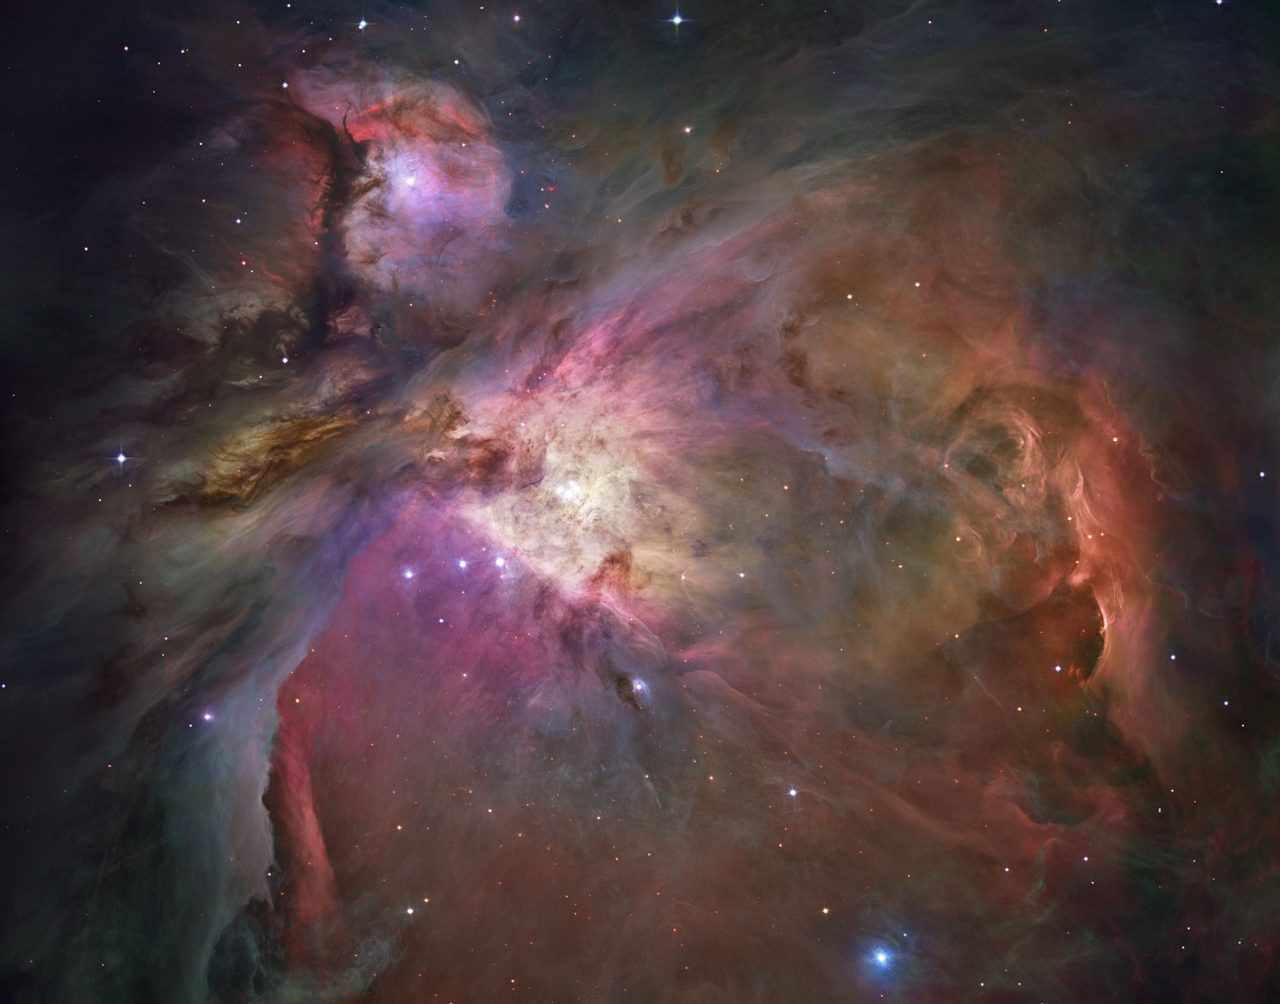 The Orion Nebula, as seen by the Hubble Space Telescope. Credit: NASA, ESA, M. Robberto ( Space Telescope Science Institute/ESA) and the Hubble Space Telescope Orion Treasury Project Team